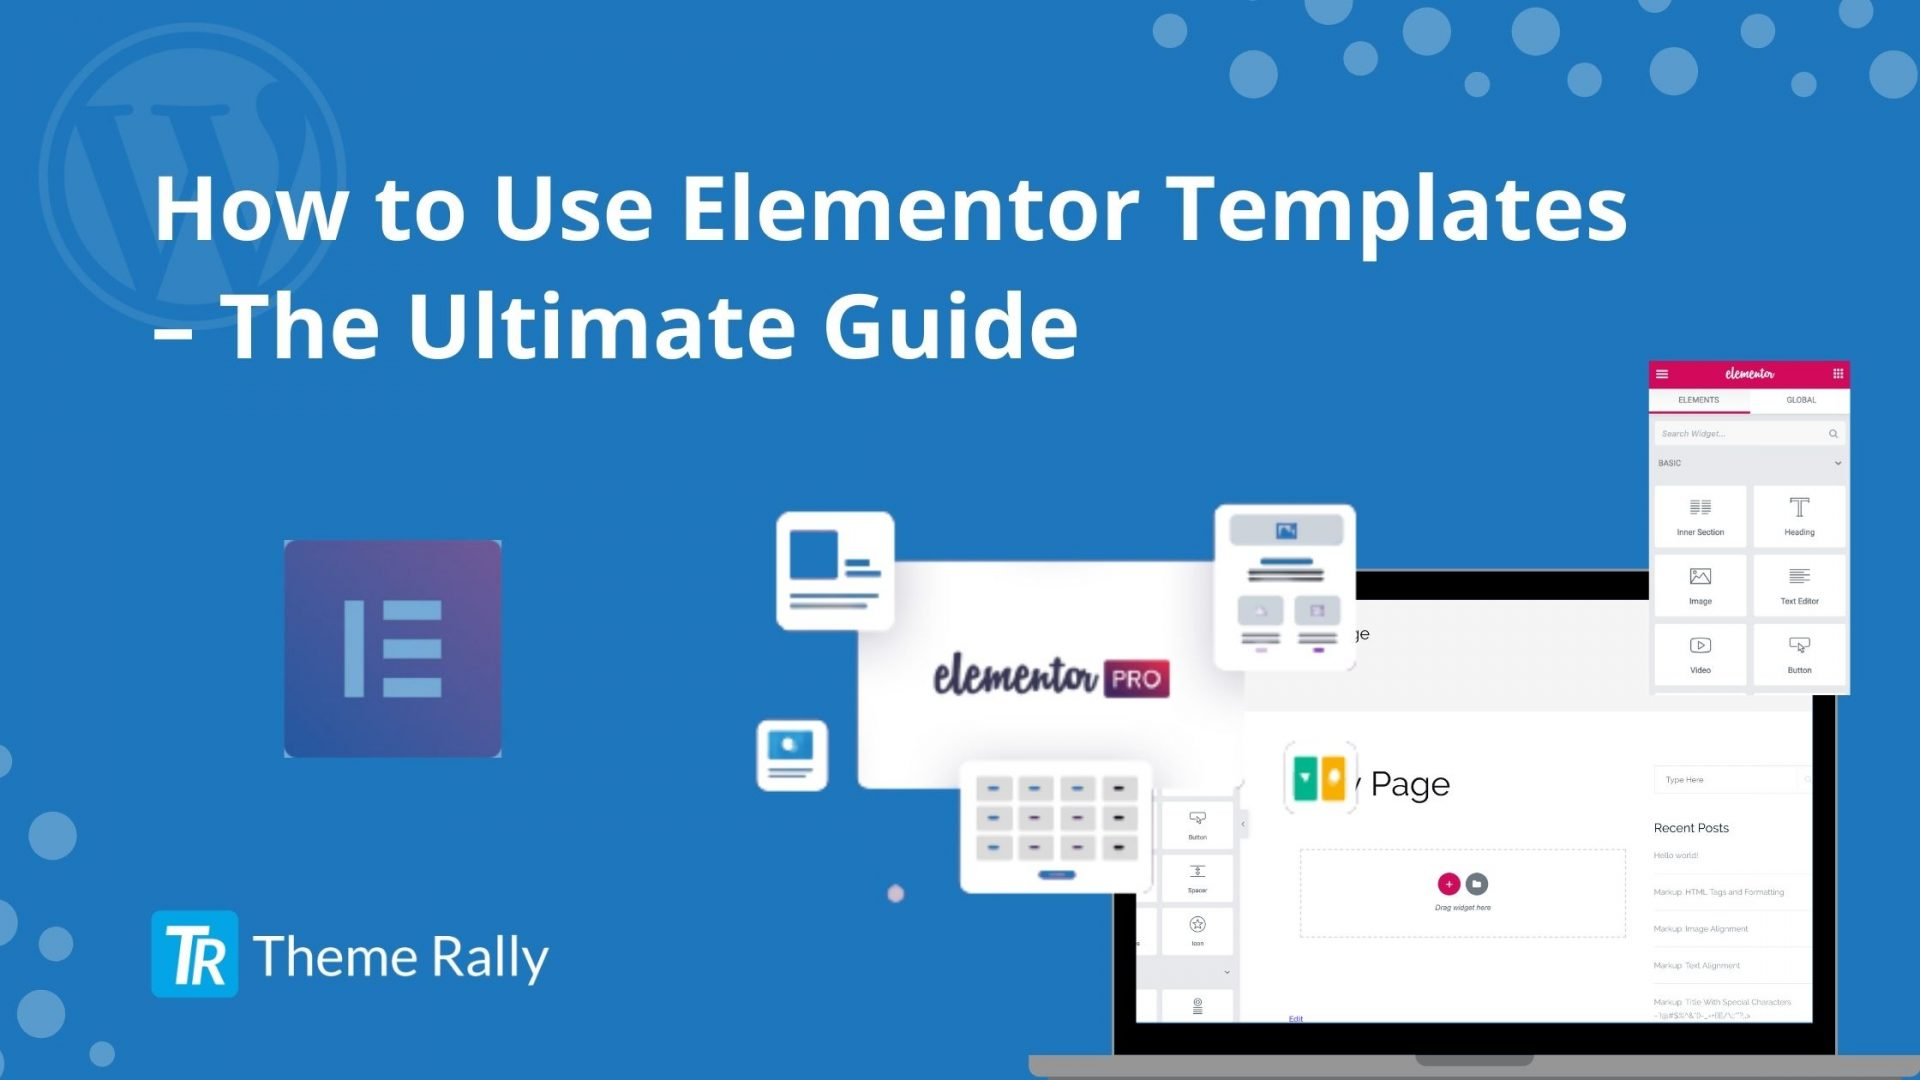 How to Use Elementor Templates - The Ultimate Guide